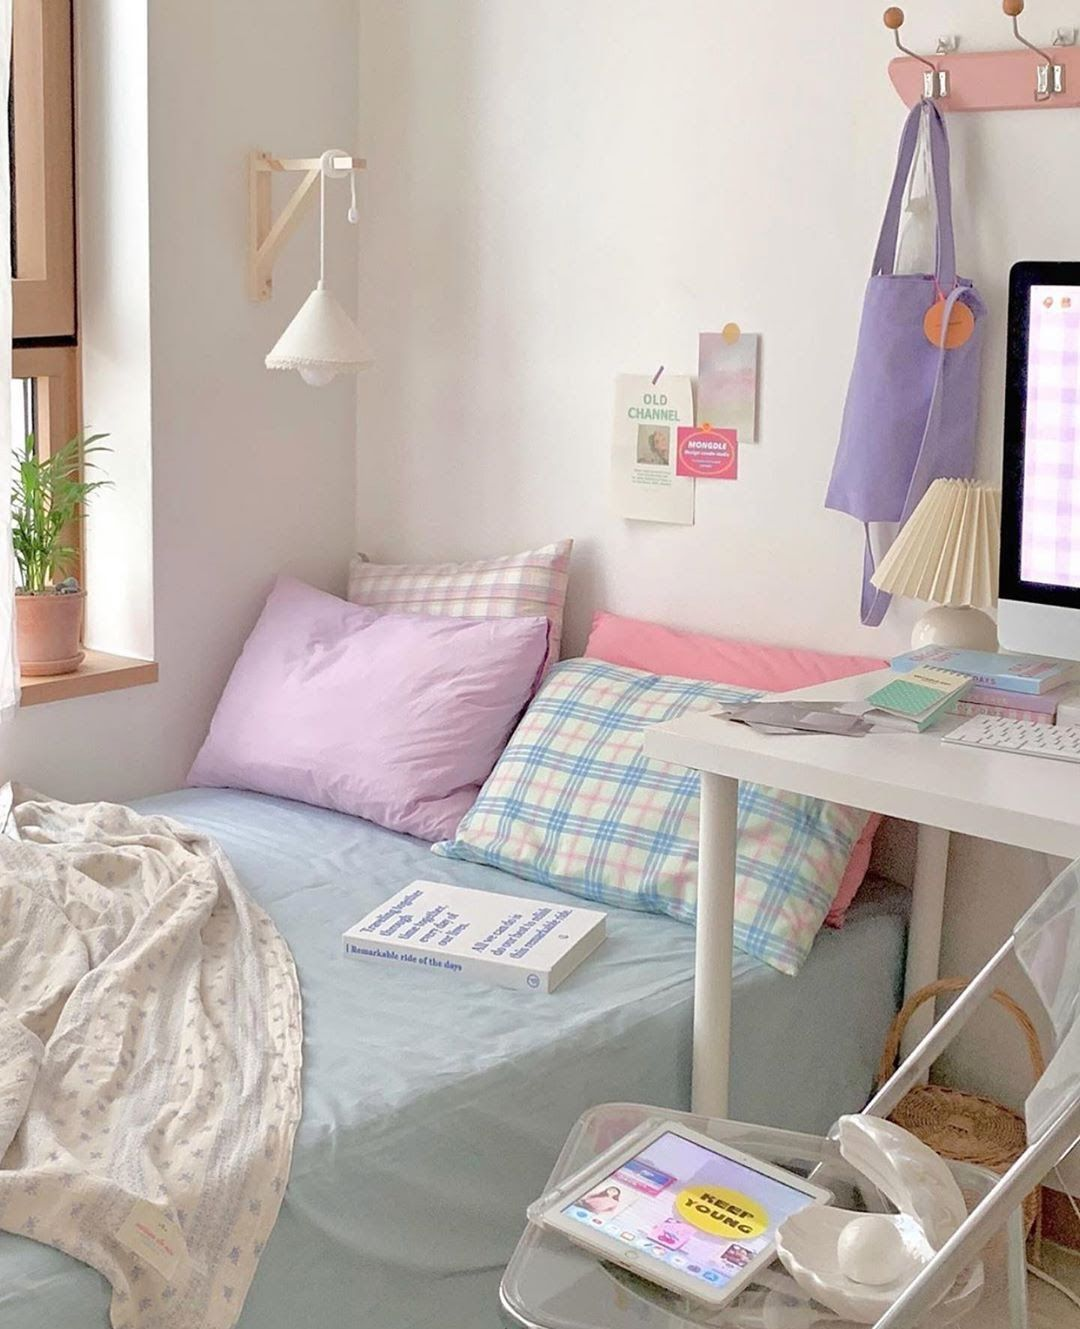 Color Trends 2021 Millennial Purple Interior Obsession Sampleboard Room Inspiration Bedroom Study Room Decor Cozy Room Purple minimalist room decor